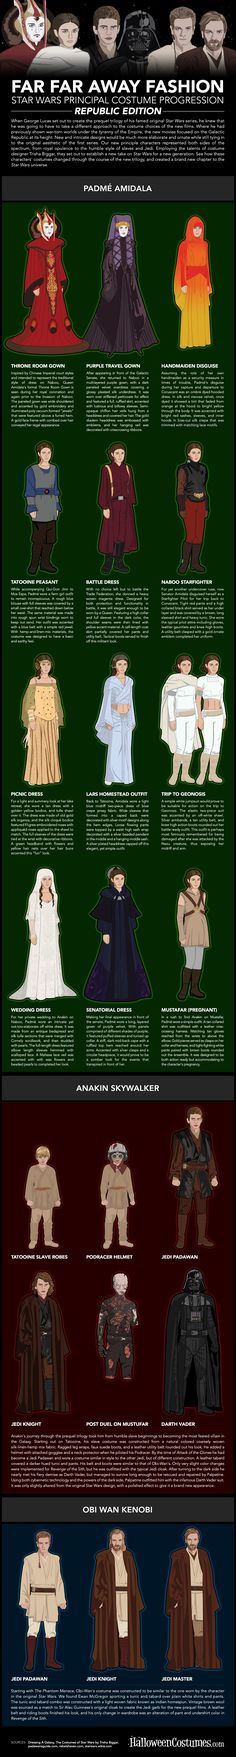 Star Wars Republic Costume Evolution Infographic